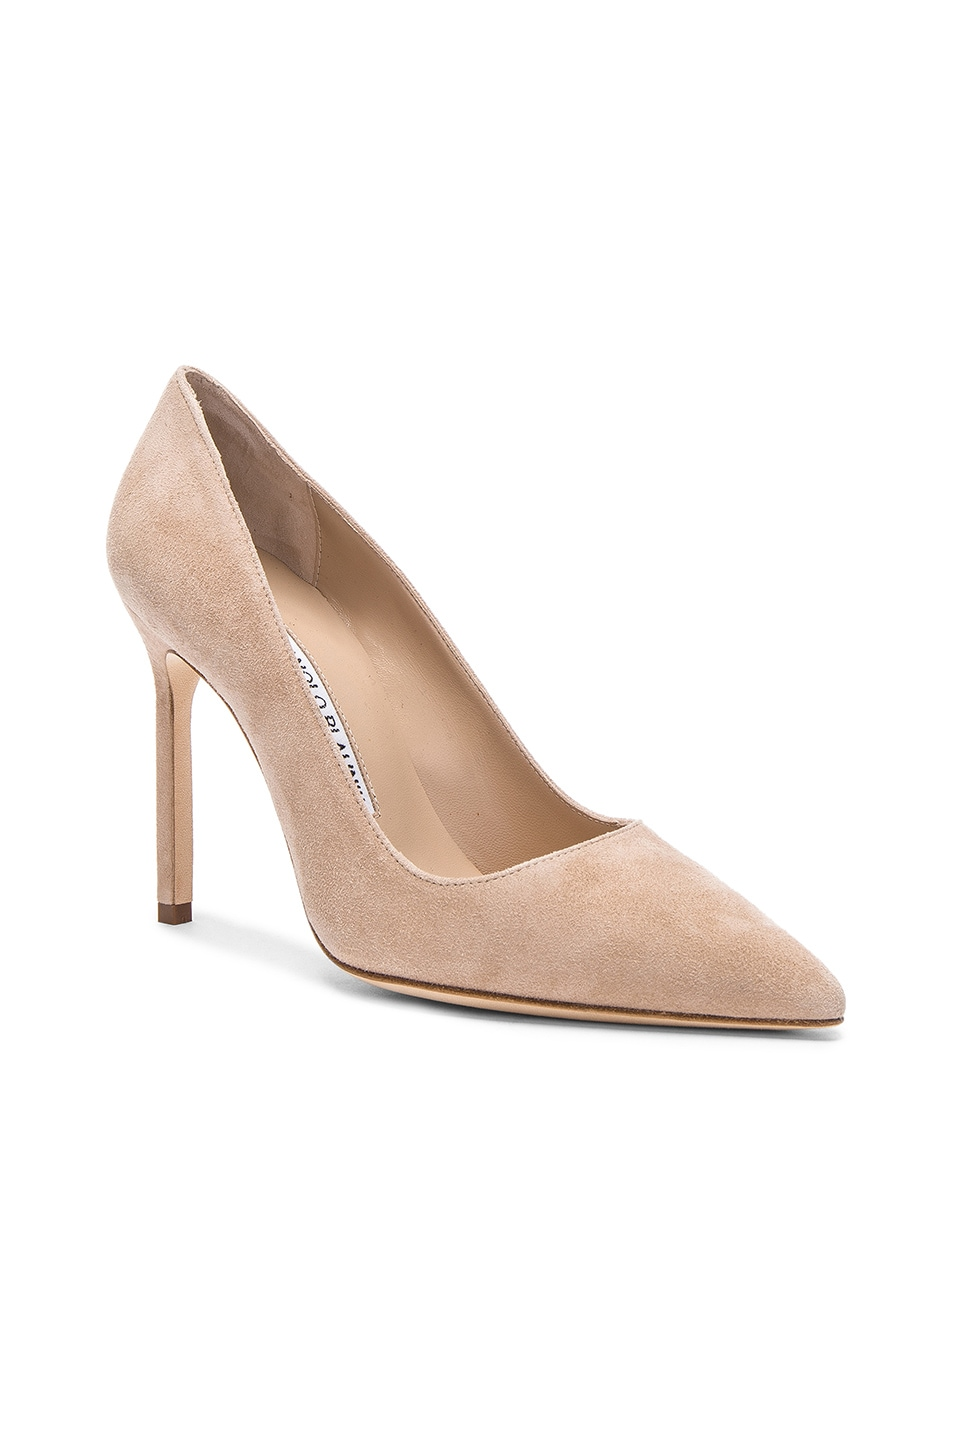 Image 2 of Manolo Blahnik BB 105 Suede Pumps in Nude Suede